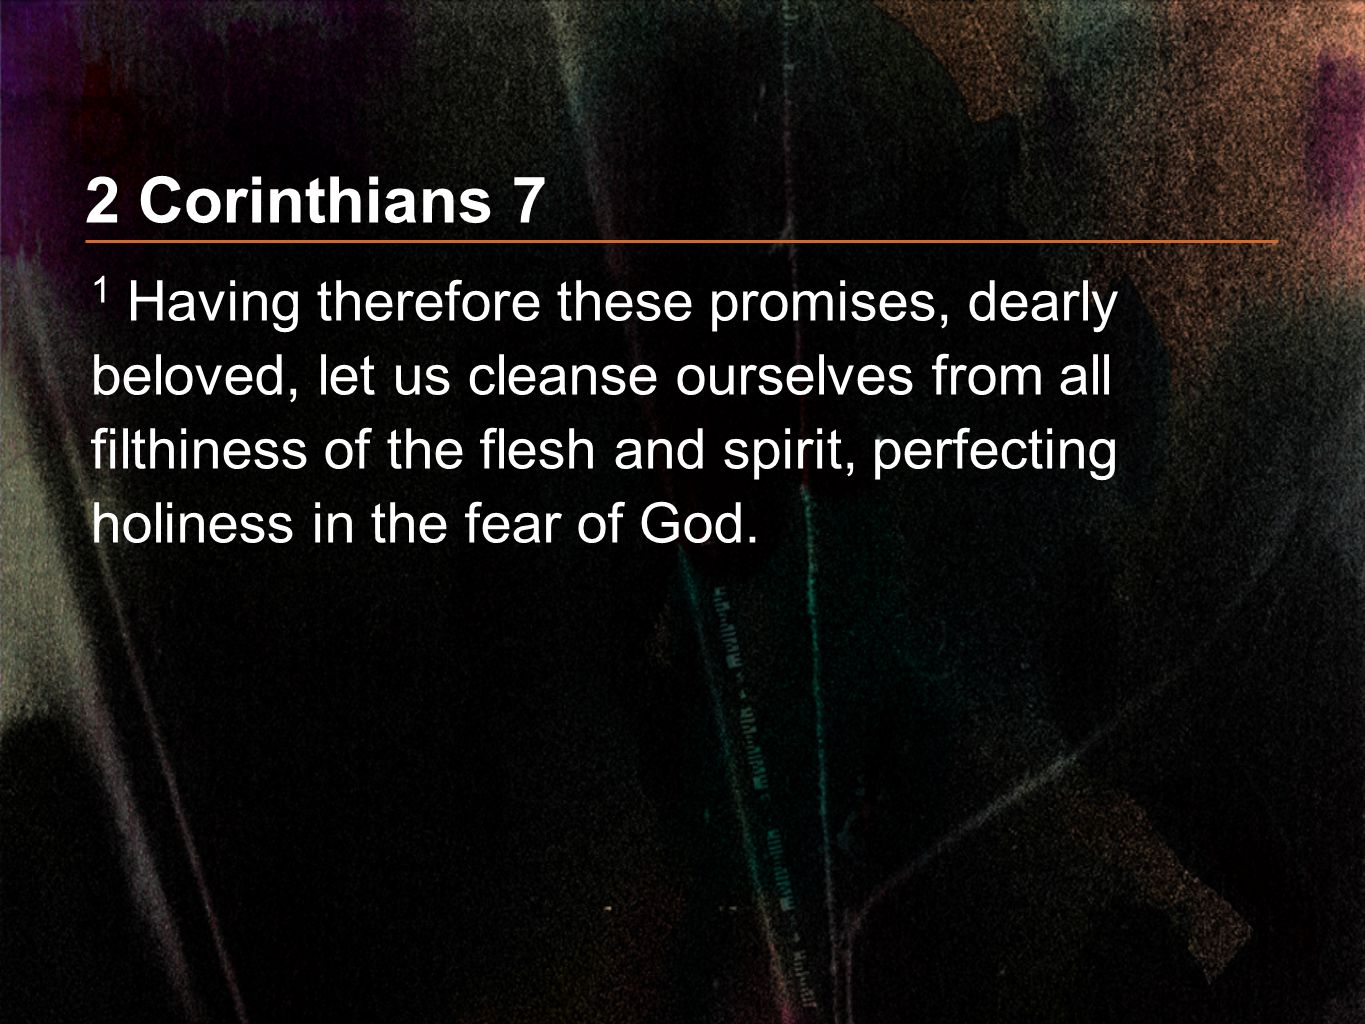 2 Corinthians 7 1 Having therefore these promises, dearly beloved, let us cleanse ourselves from all filthiness of the flesh and spirit, perfecting ho